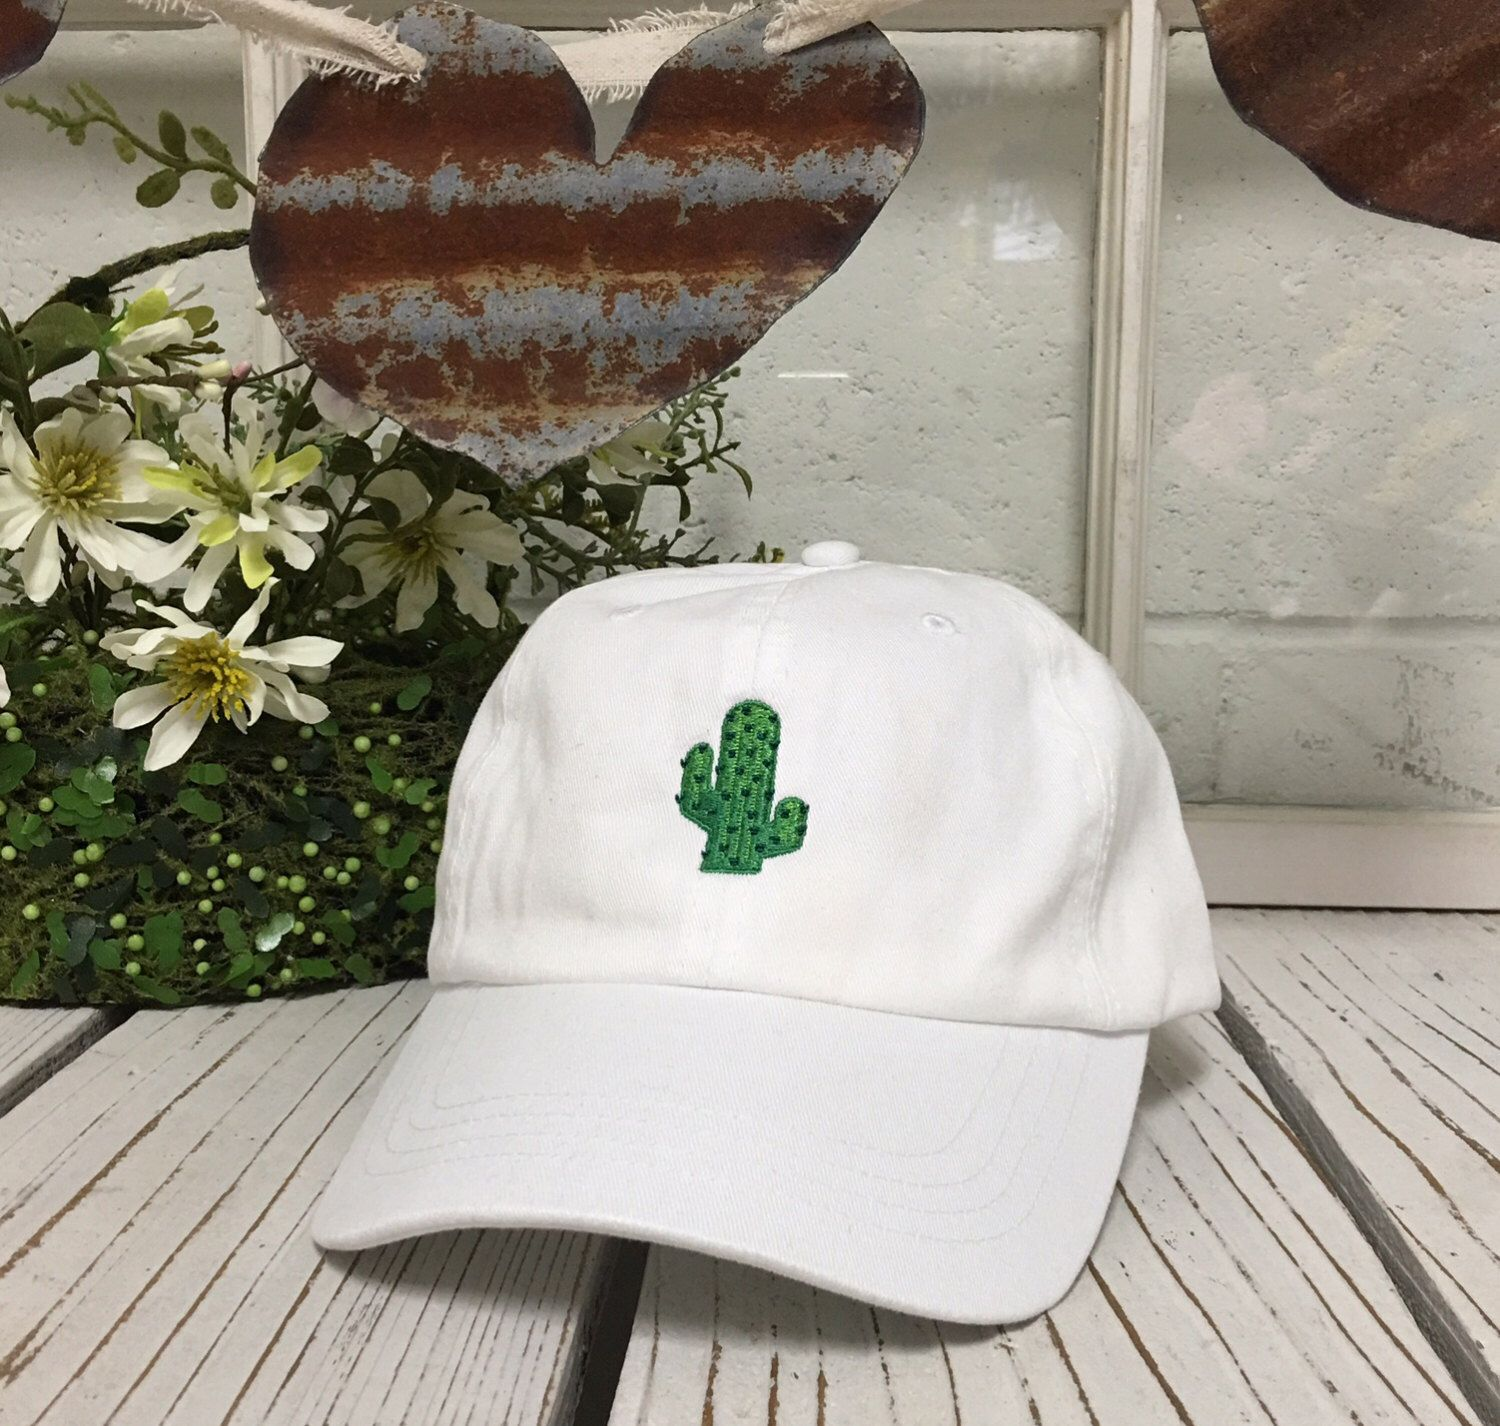 Vintage CACTUS Baseball Cap Low Profile Dad Hats Baseball Hat Embroidery  White by TheHatConnection on Etsy 1c3211e61a32